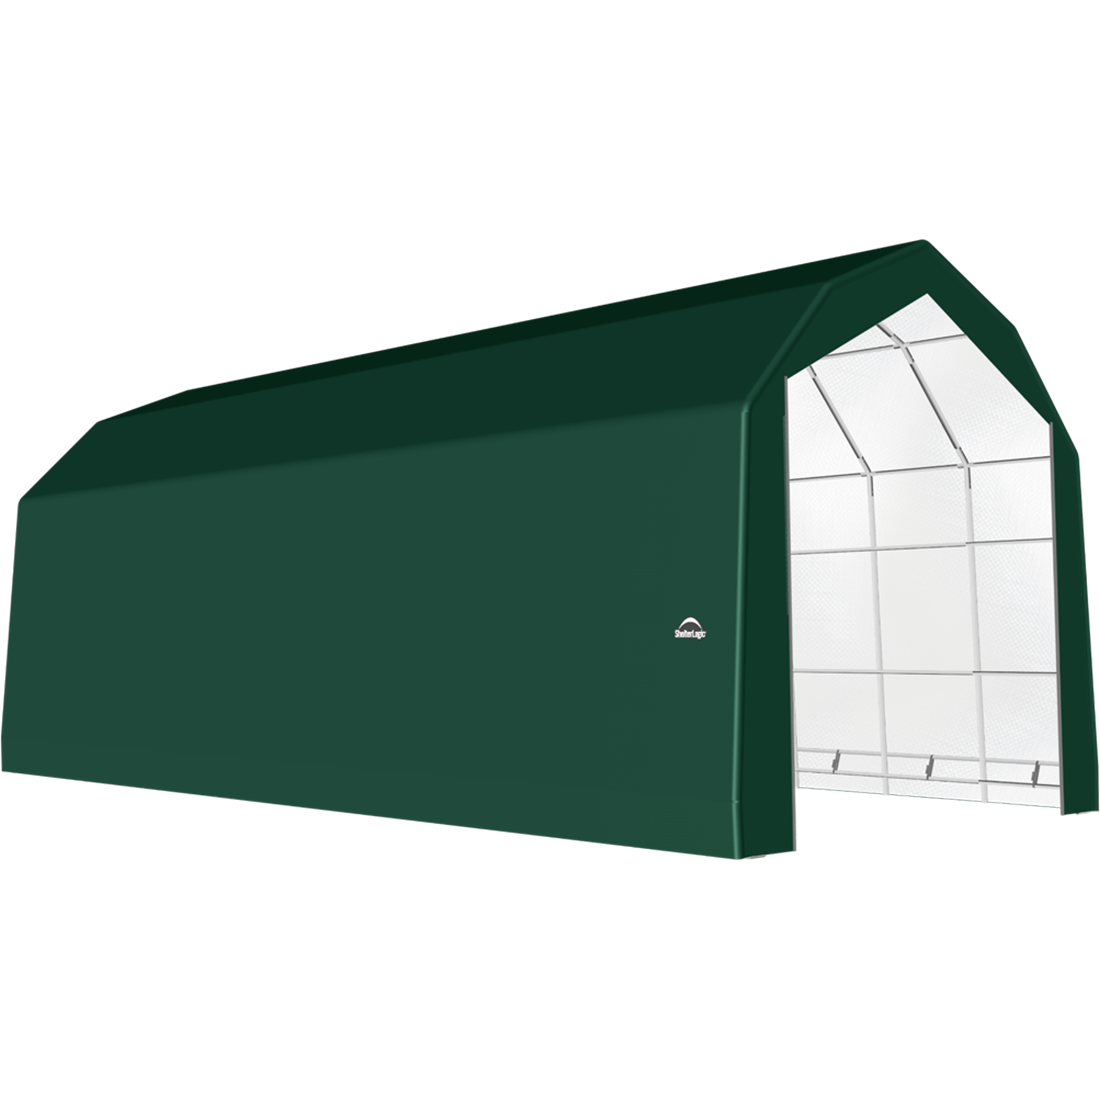 SP Barn 20X32X18 Green 14 oz PE Shelter